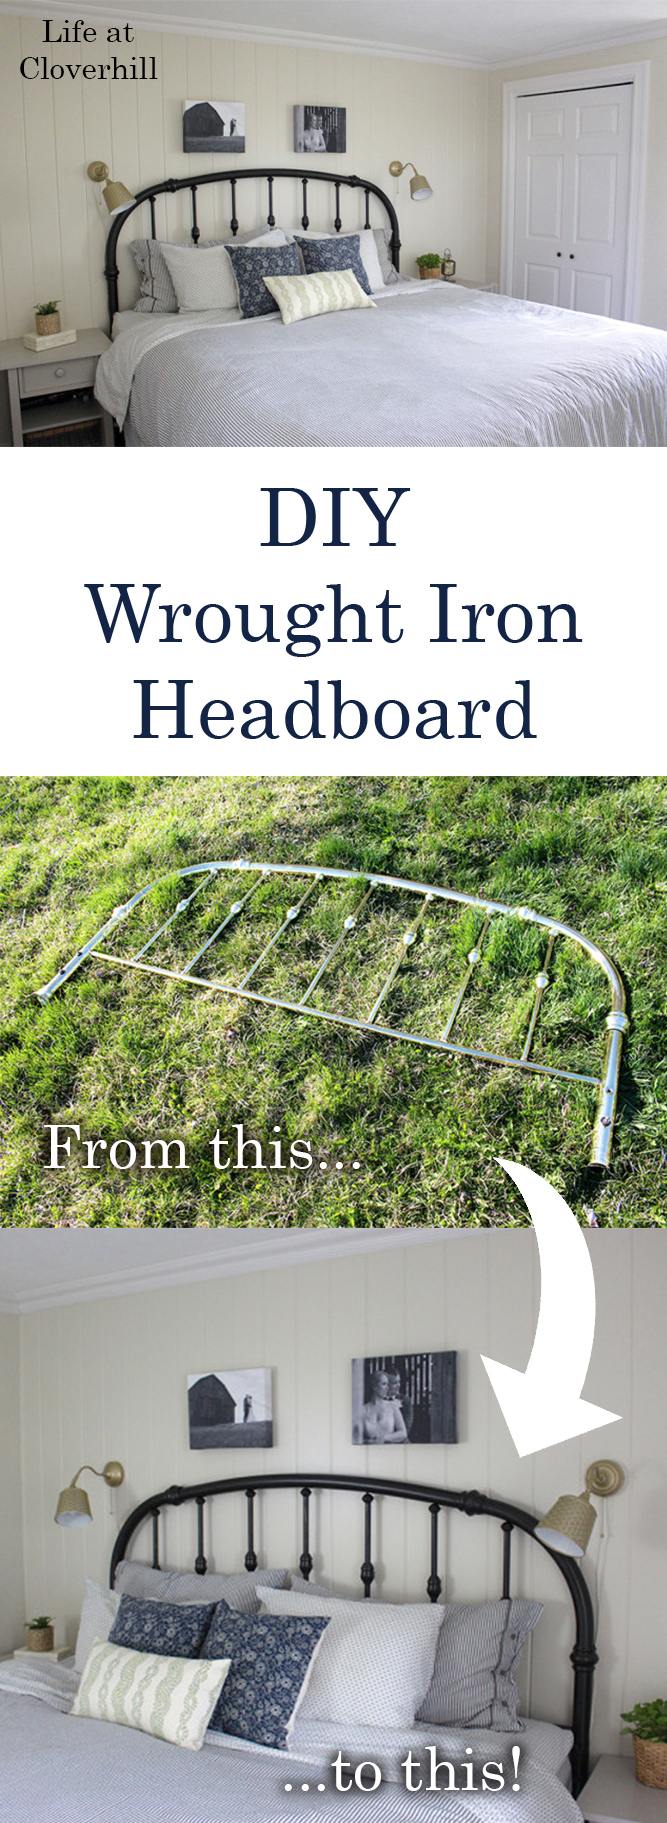 diy-wrought-iron-headboard